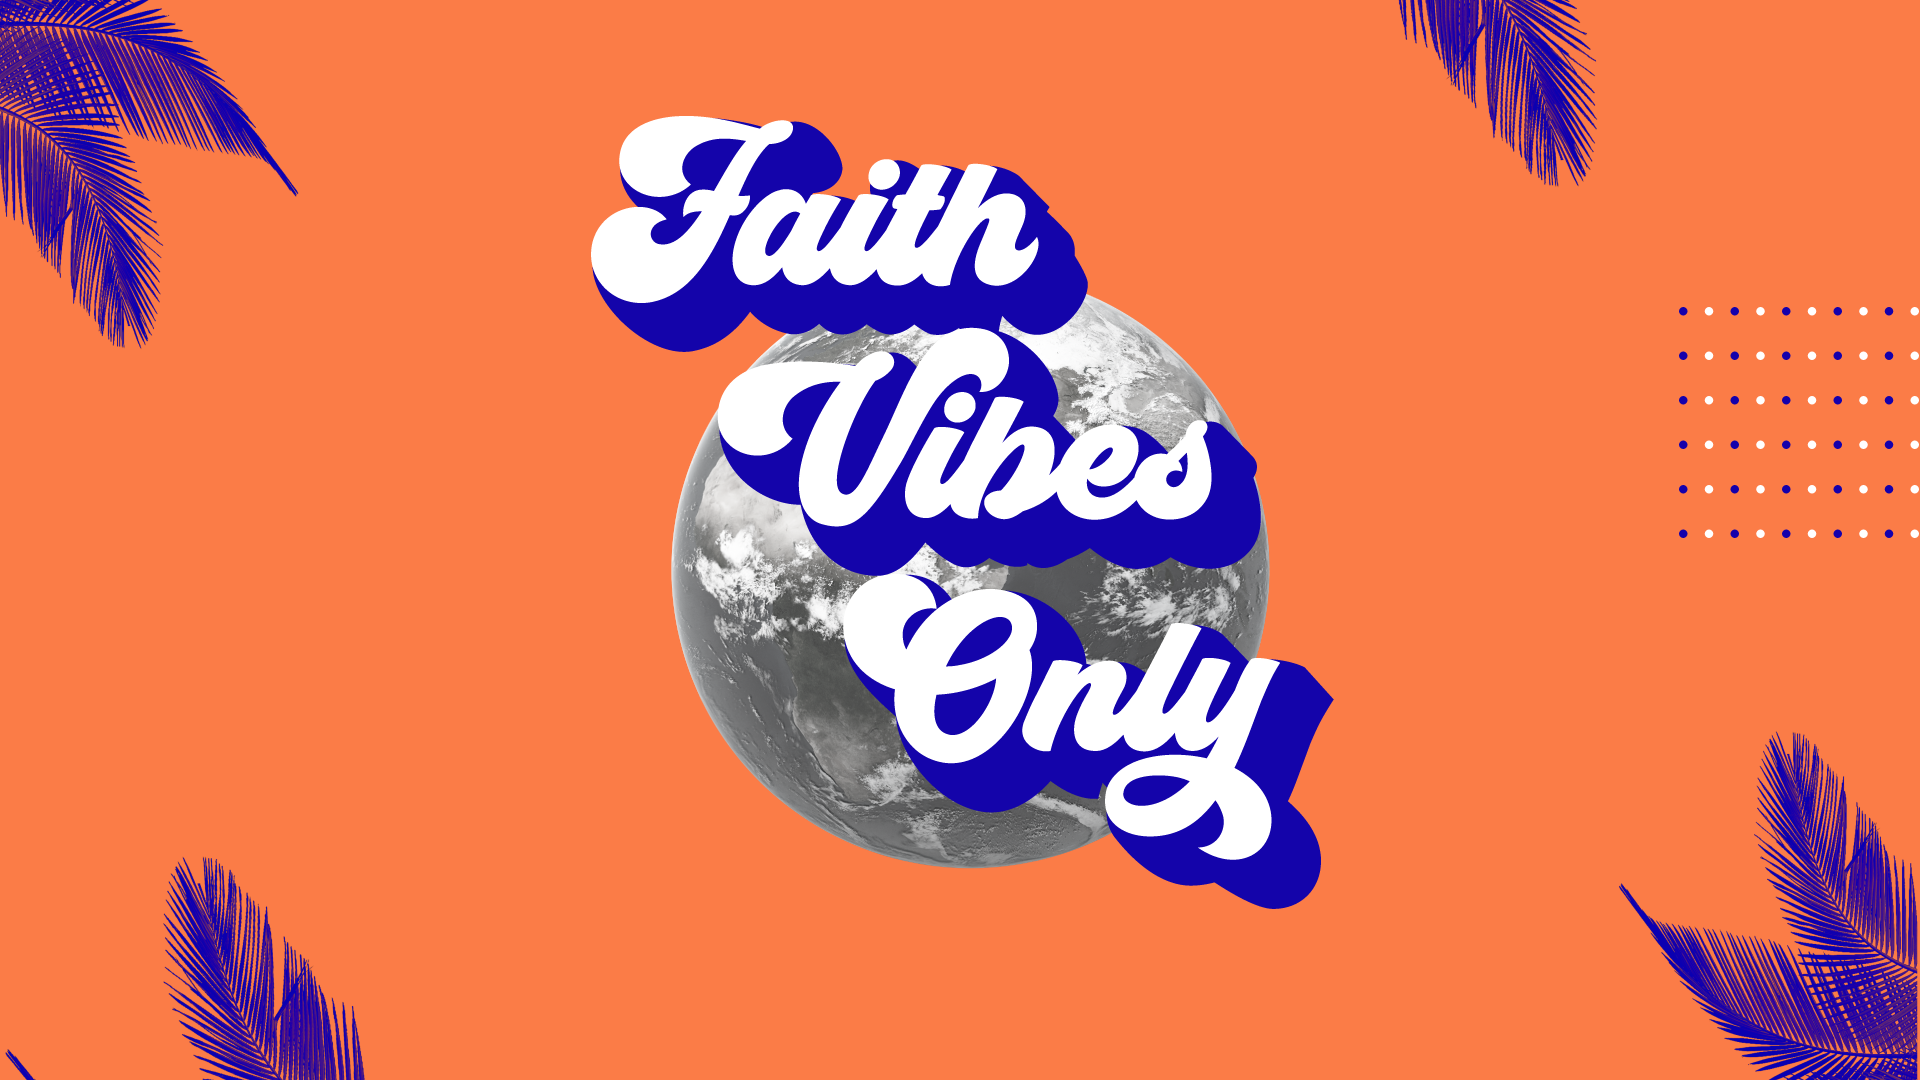 Faith-Vibes-Only-1920-x-1080.png